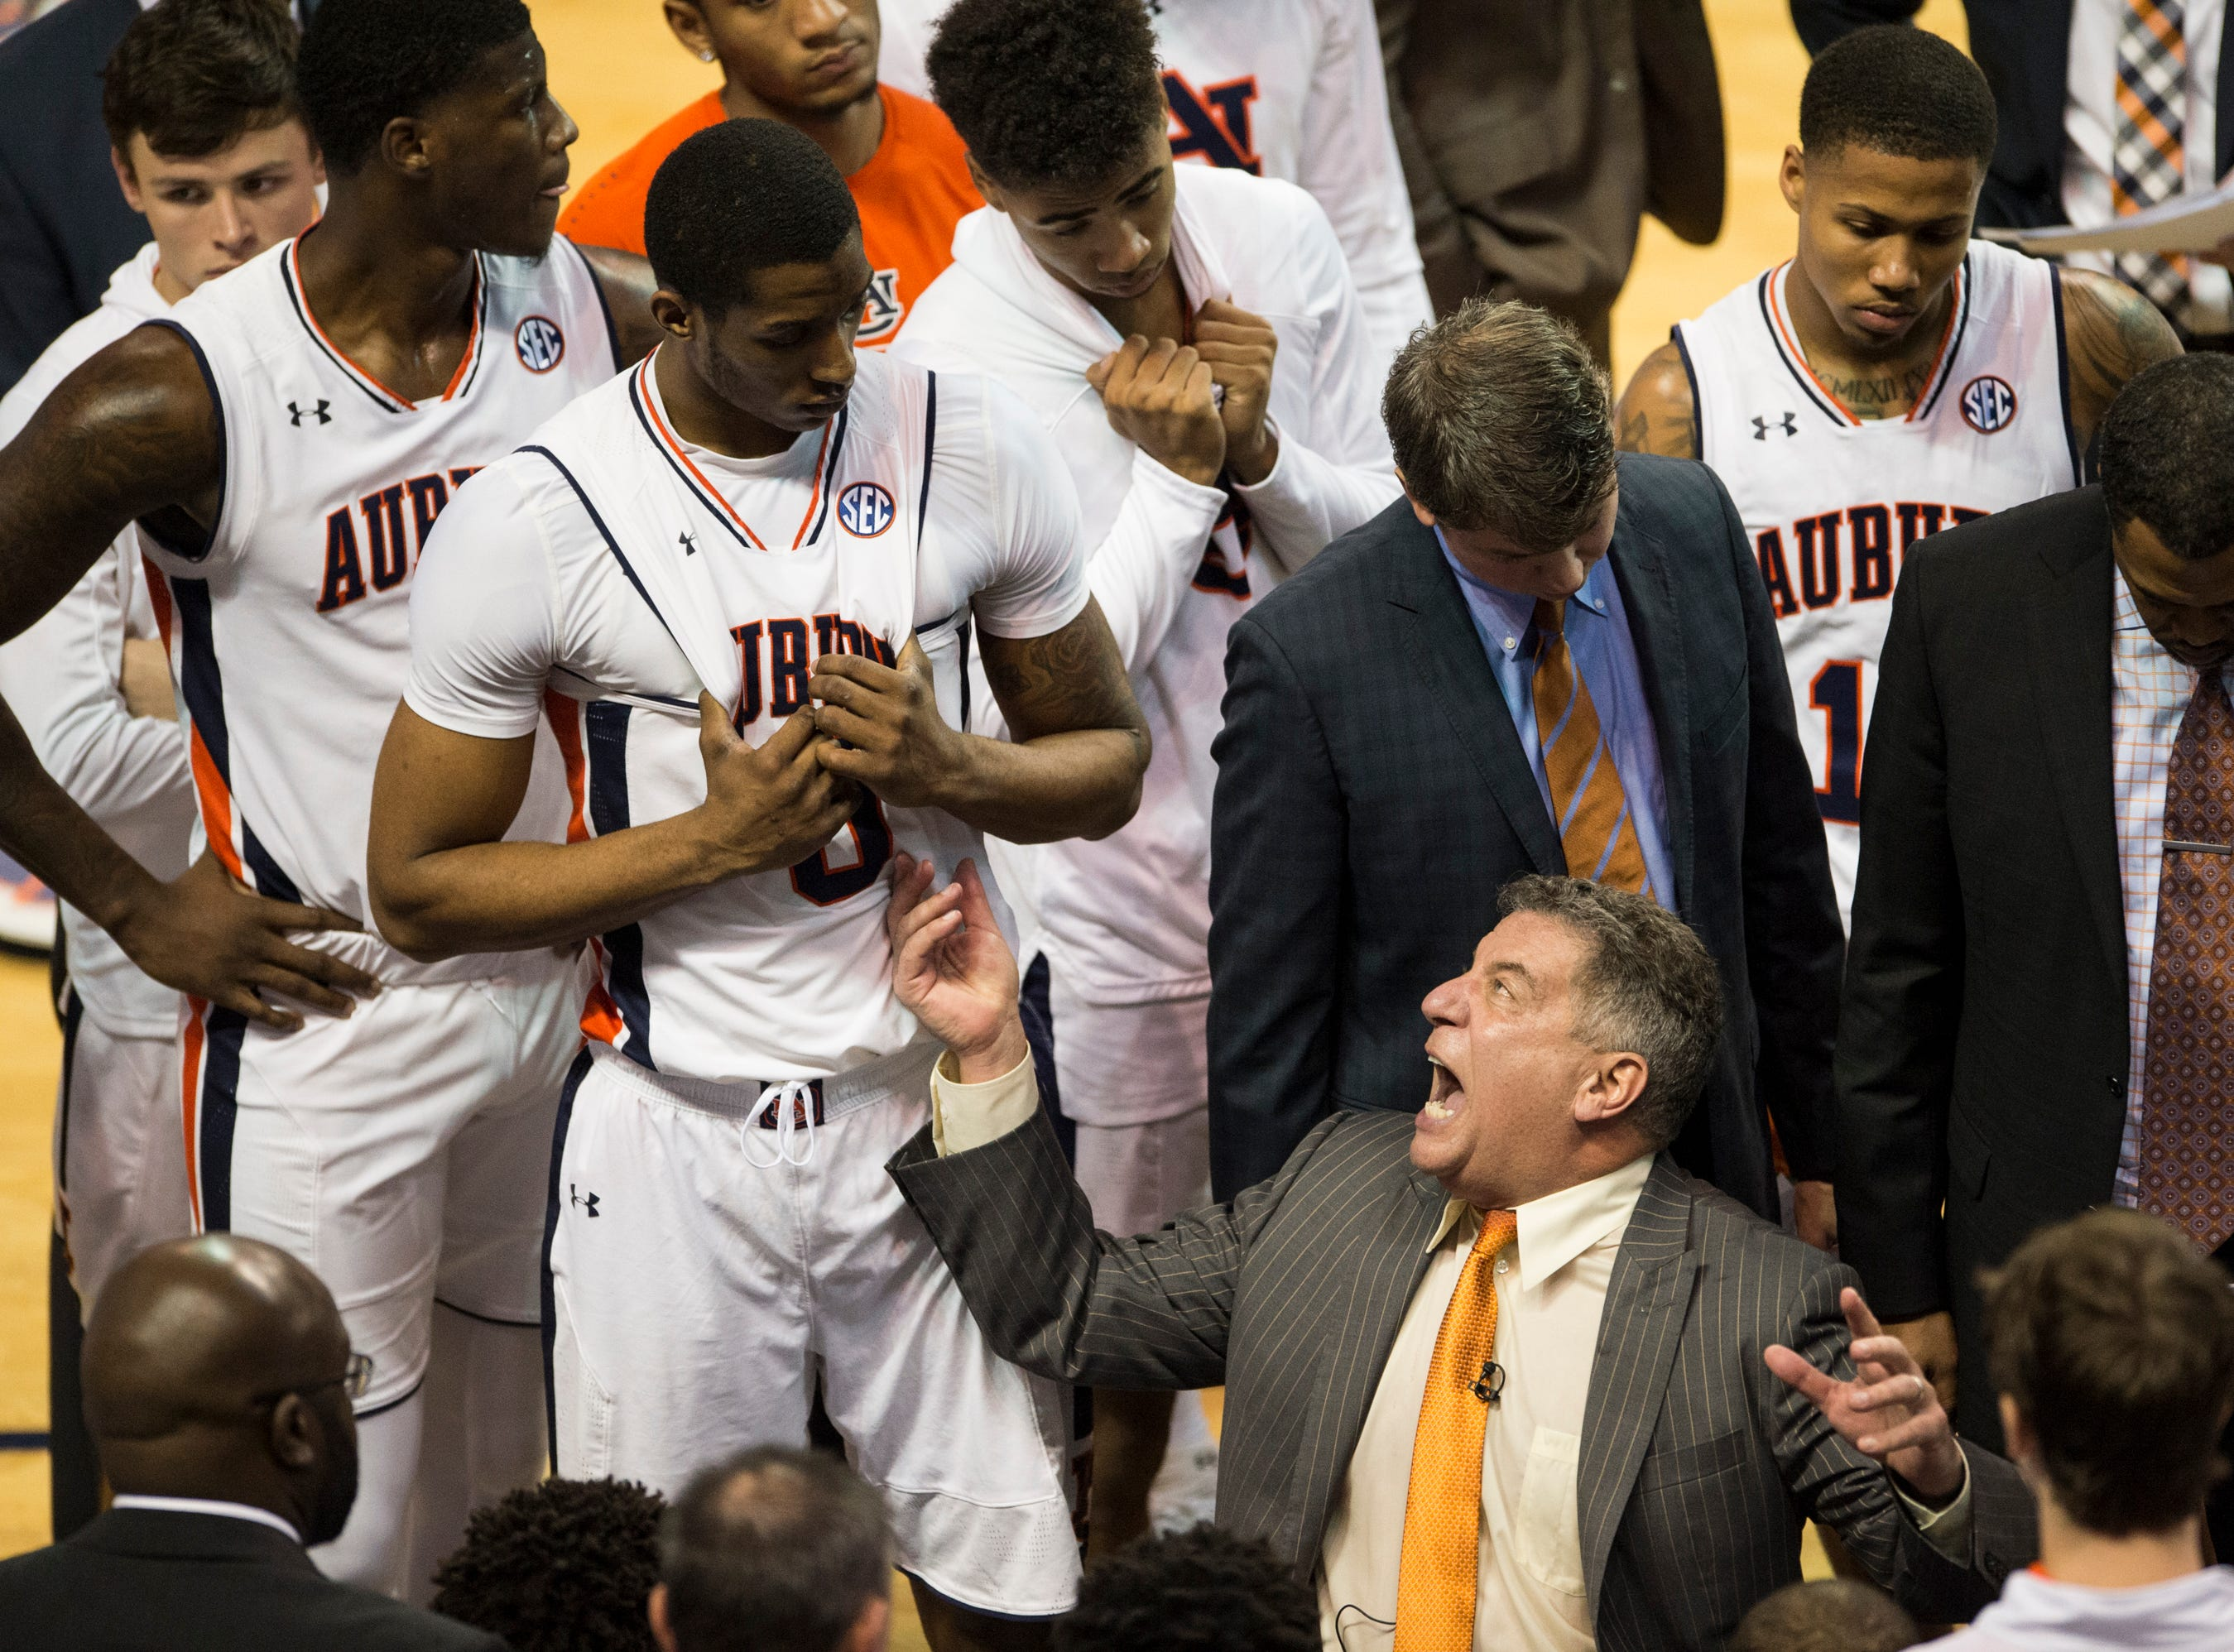 Auburn head coach Bruce Pearl talks with his team during a time out at Auburn Arena in Auburn, Ala., on Saturday, Jan. 19, 2019. Kentucky defeats Auburn 82-80.